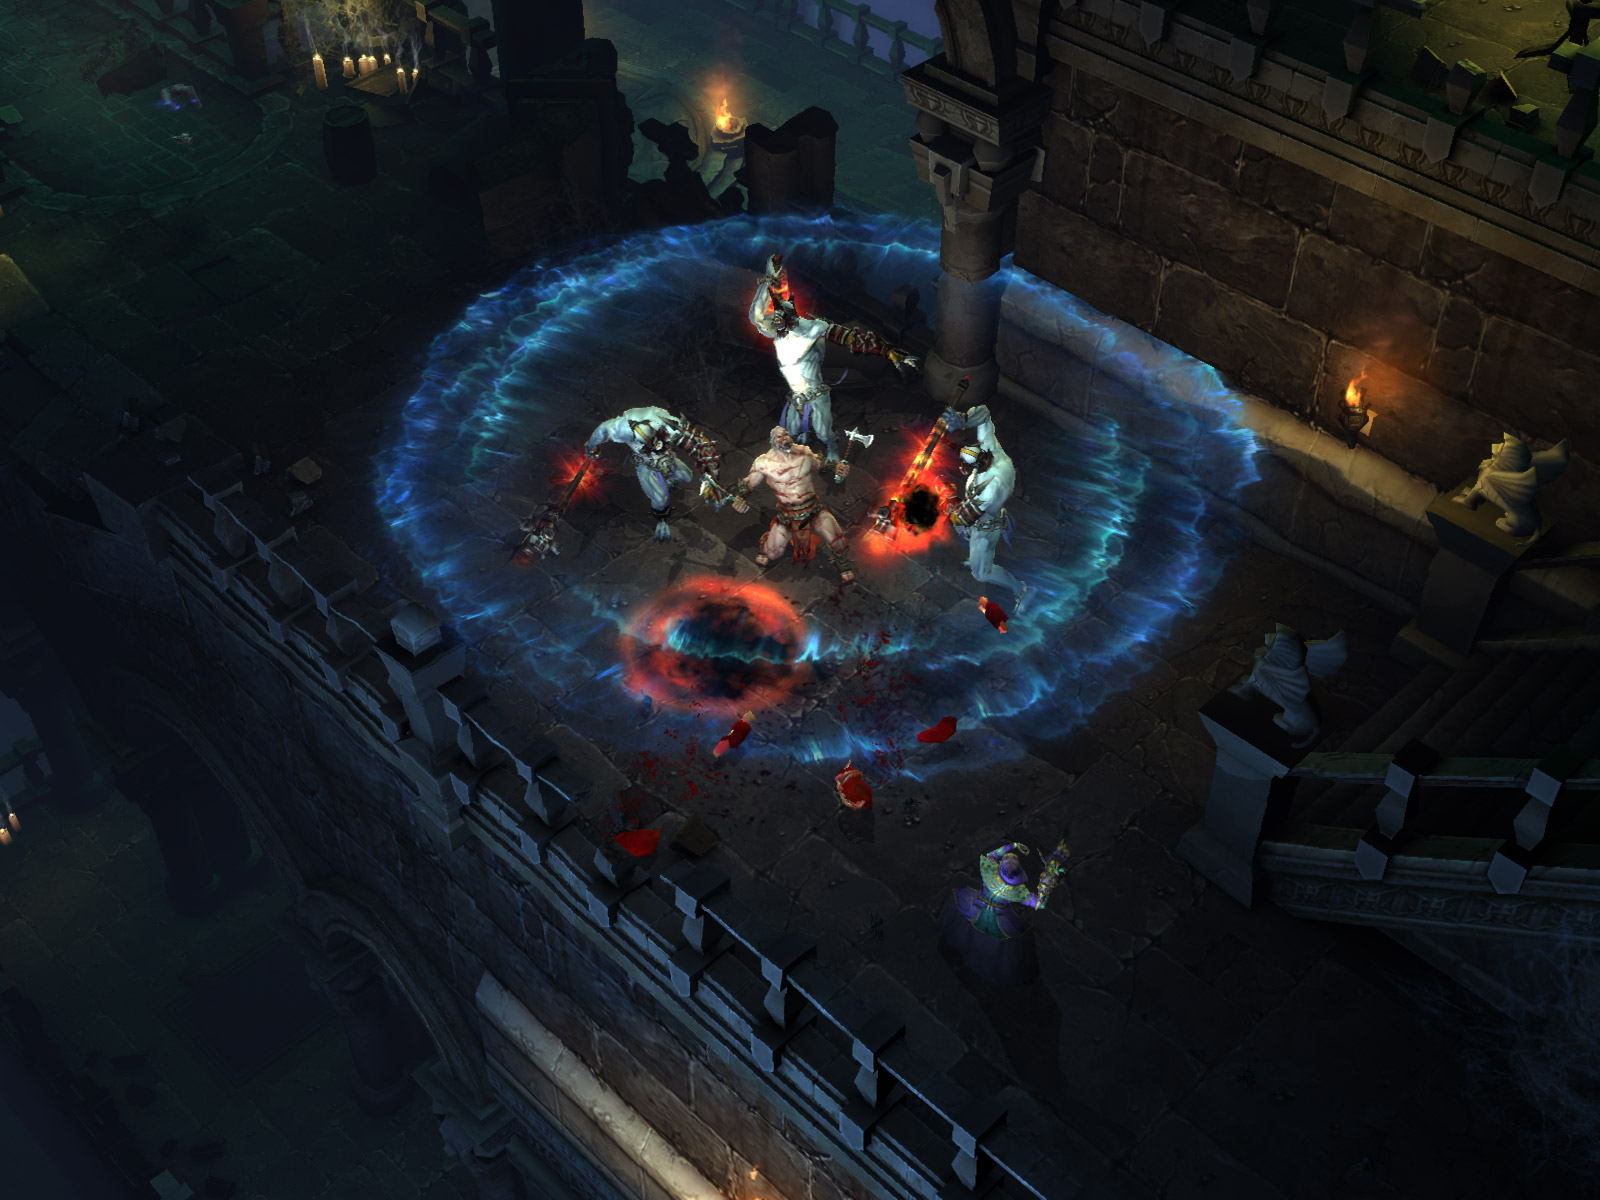 Wallpaper Jeux video Diablo 3 capture ecran barbare